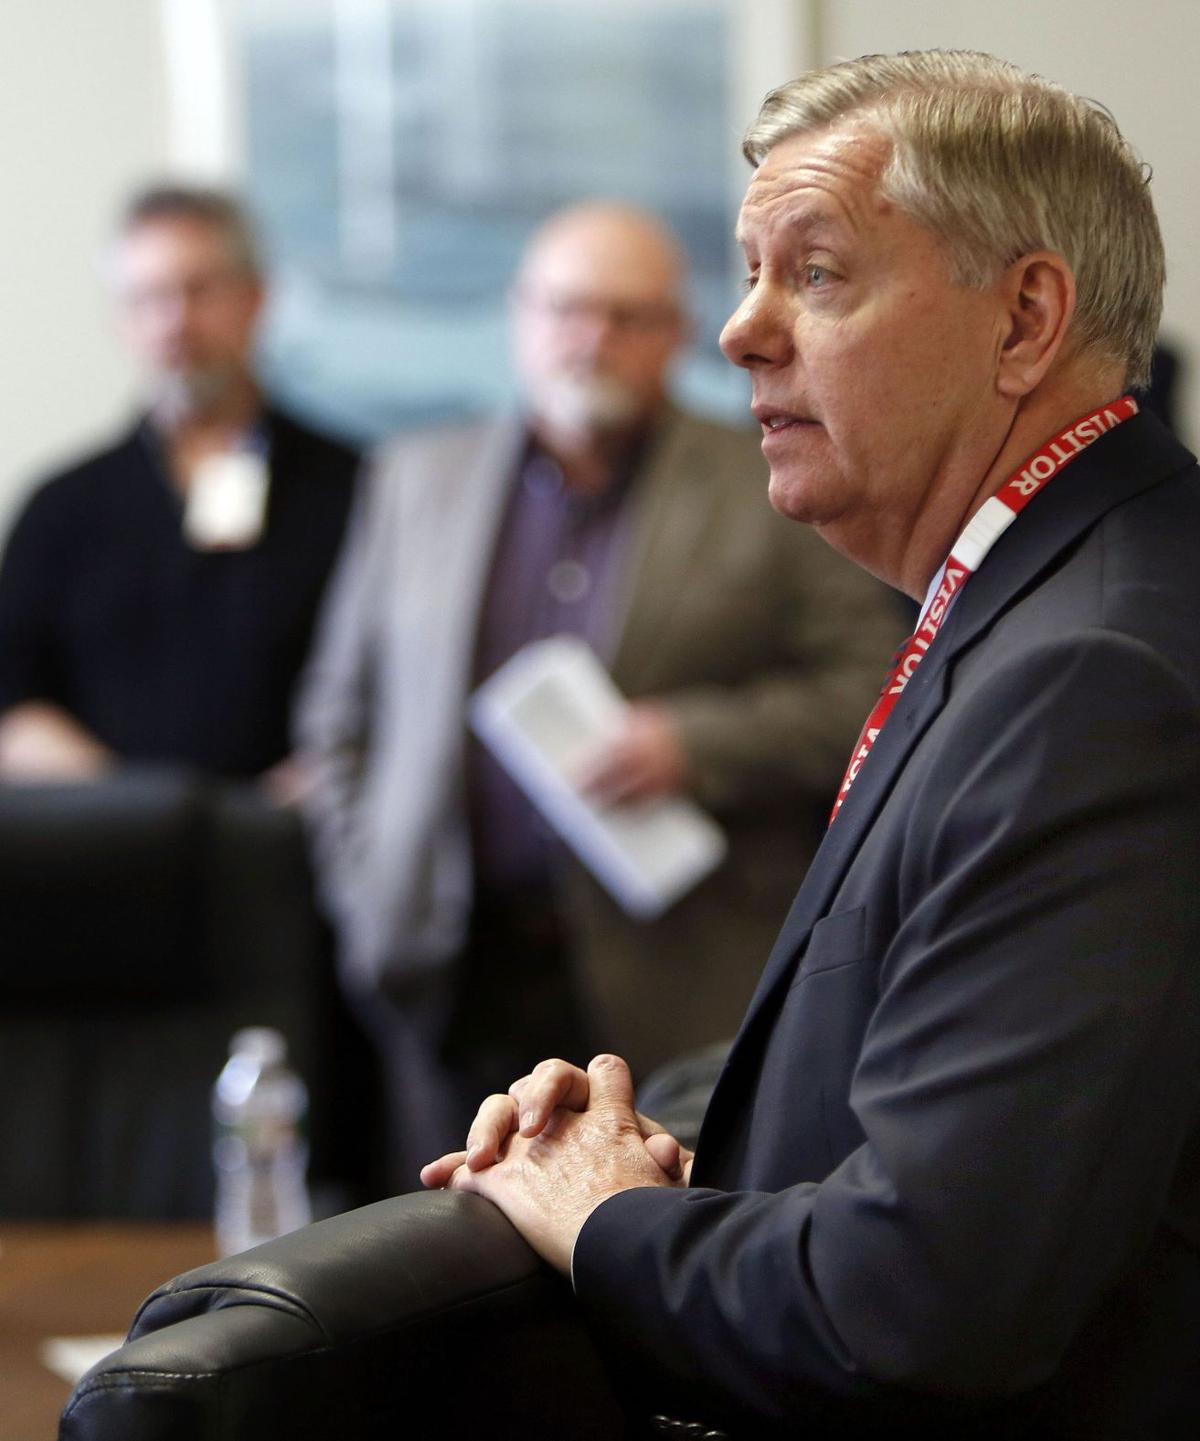 With Paul running, GOP foe Lindsey Graham tries to stand in the way